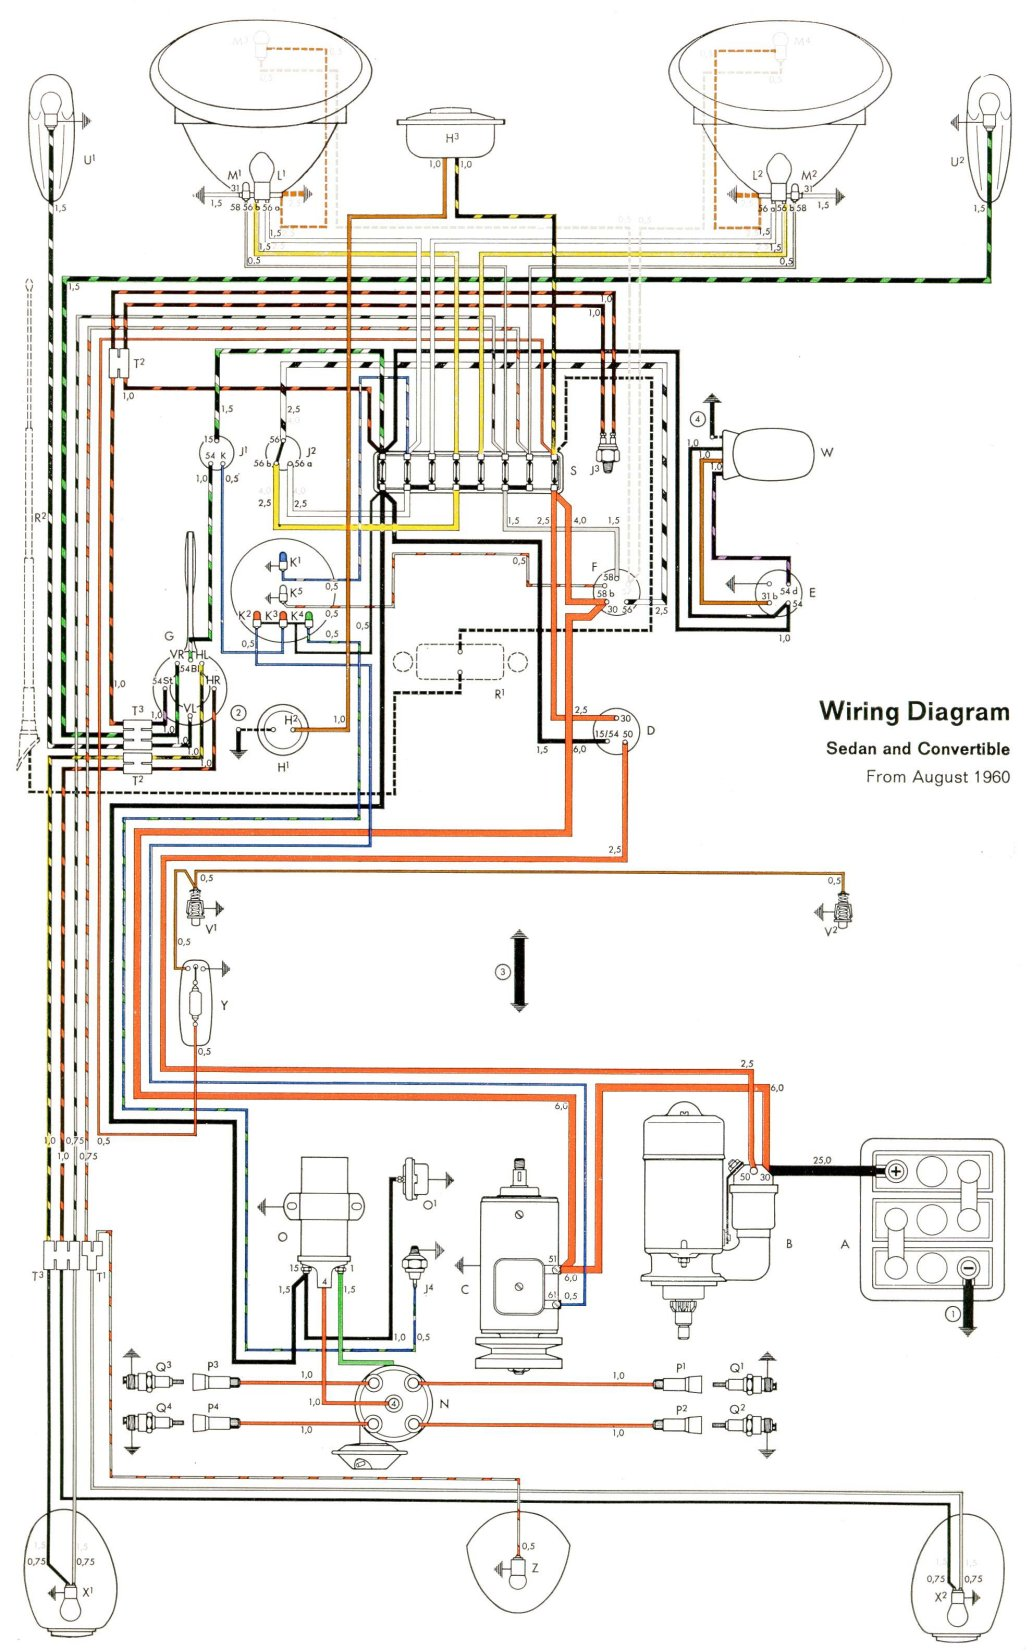 hight resolution of 74 vw engine diagram blog wiring diagram 74 vw engine diagram